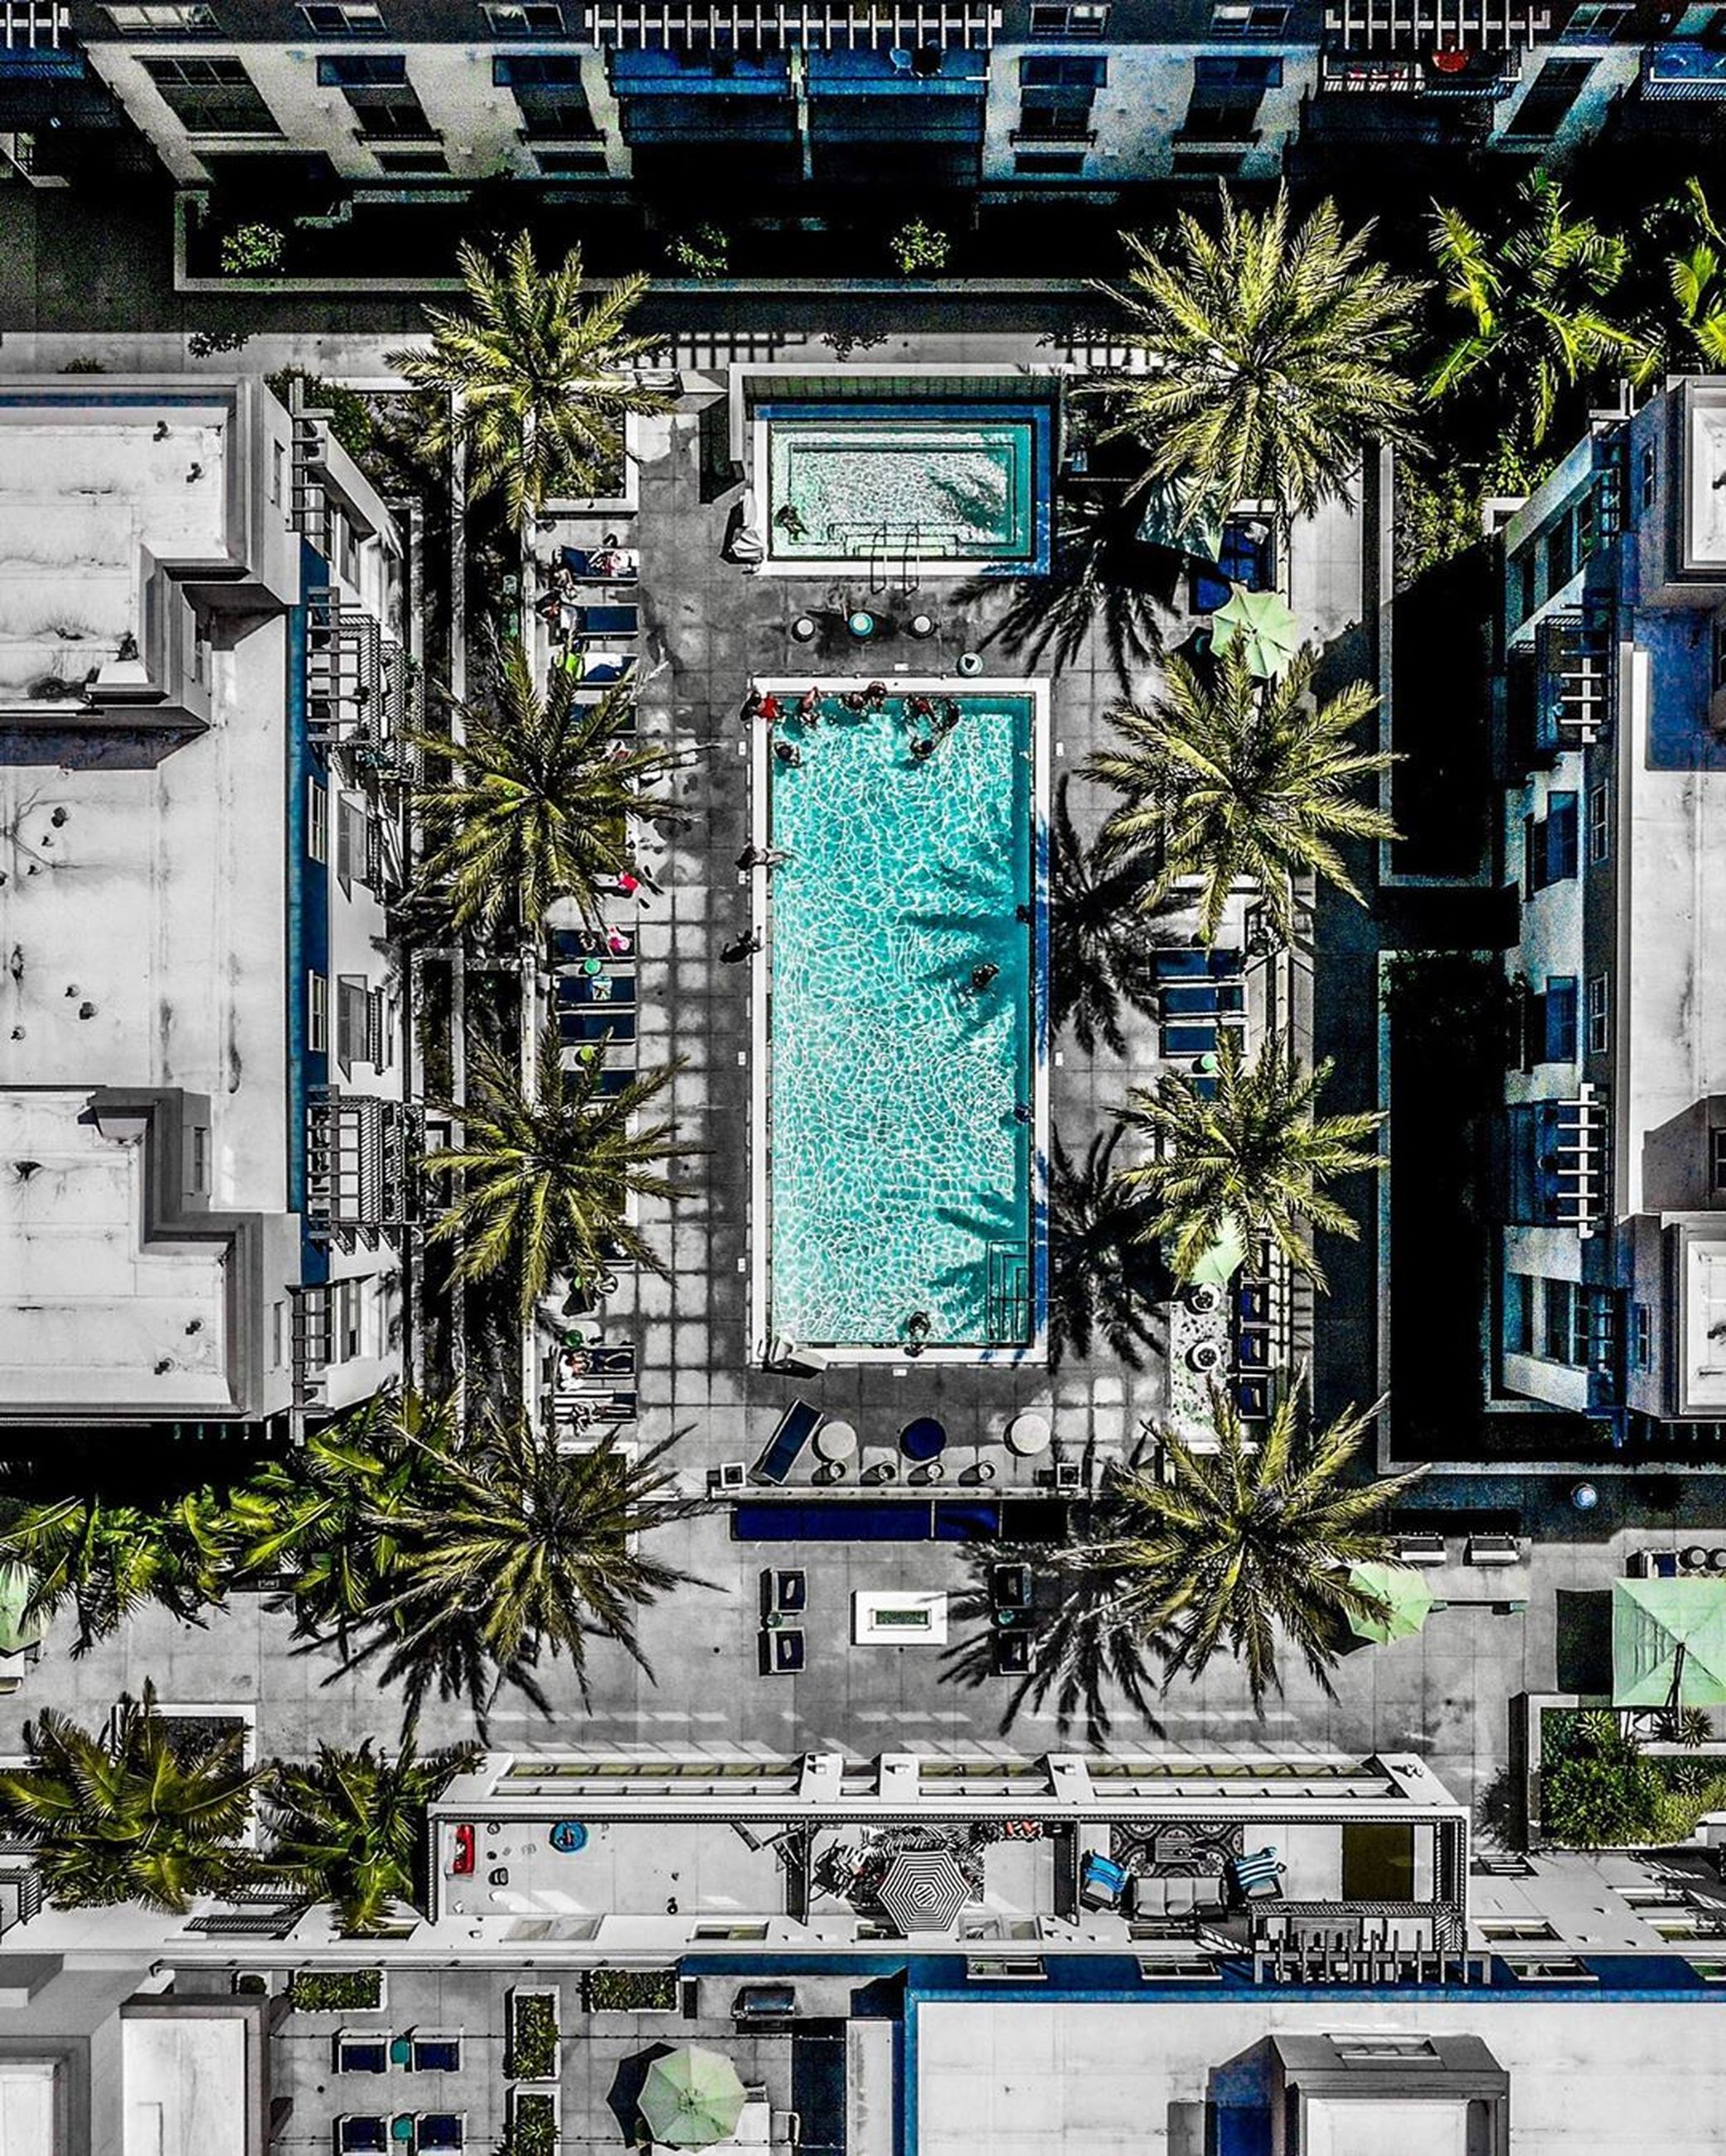 built structure, tree, architecture, building exterior, city, plant, tropical climate, palm tree, motor vehicle, day, car, outdoors, building, mode of transportation, nature, land vehicle, no people, transportation, street, apartment